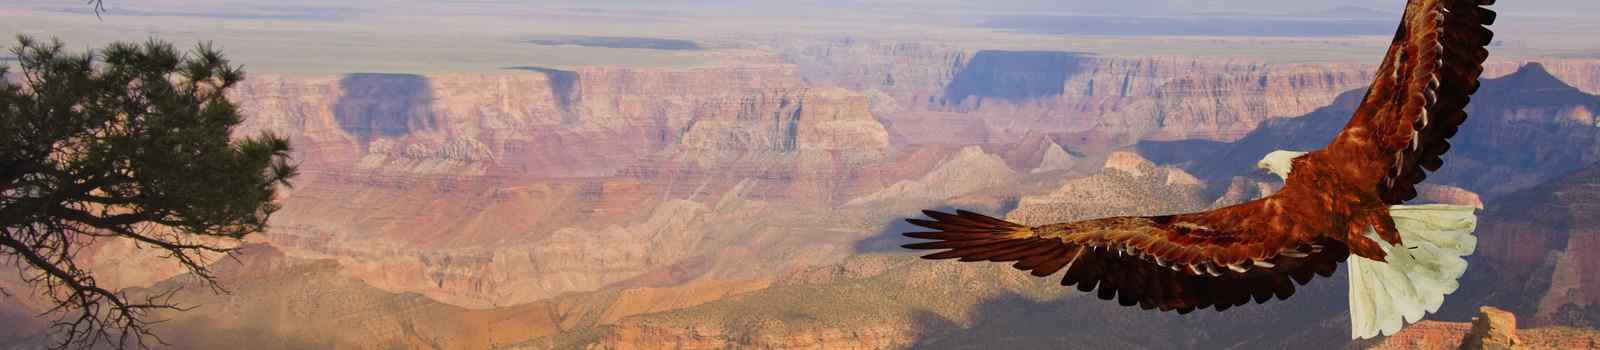 AB-WILD-WEST -USA Grand Canyon